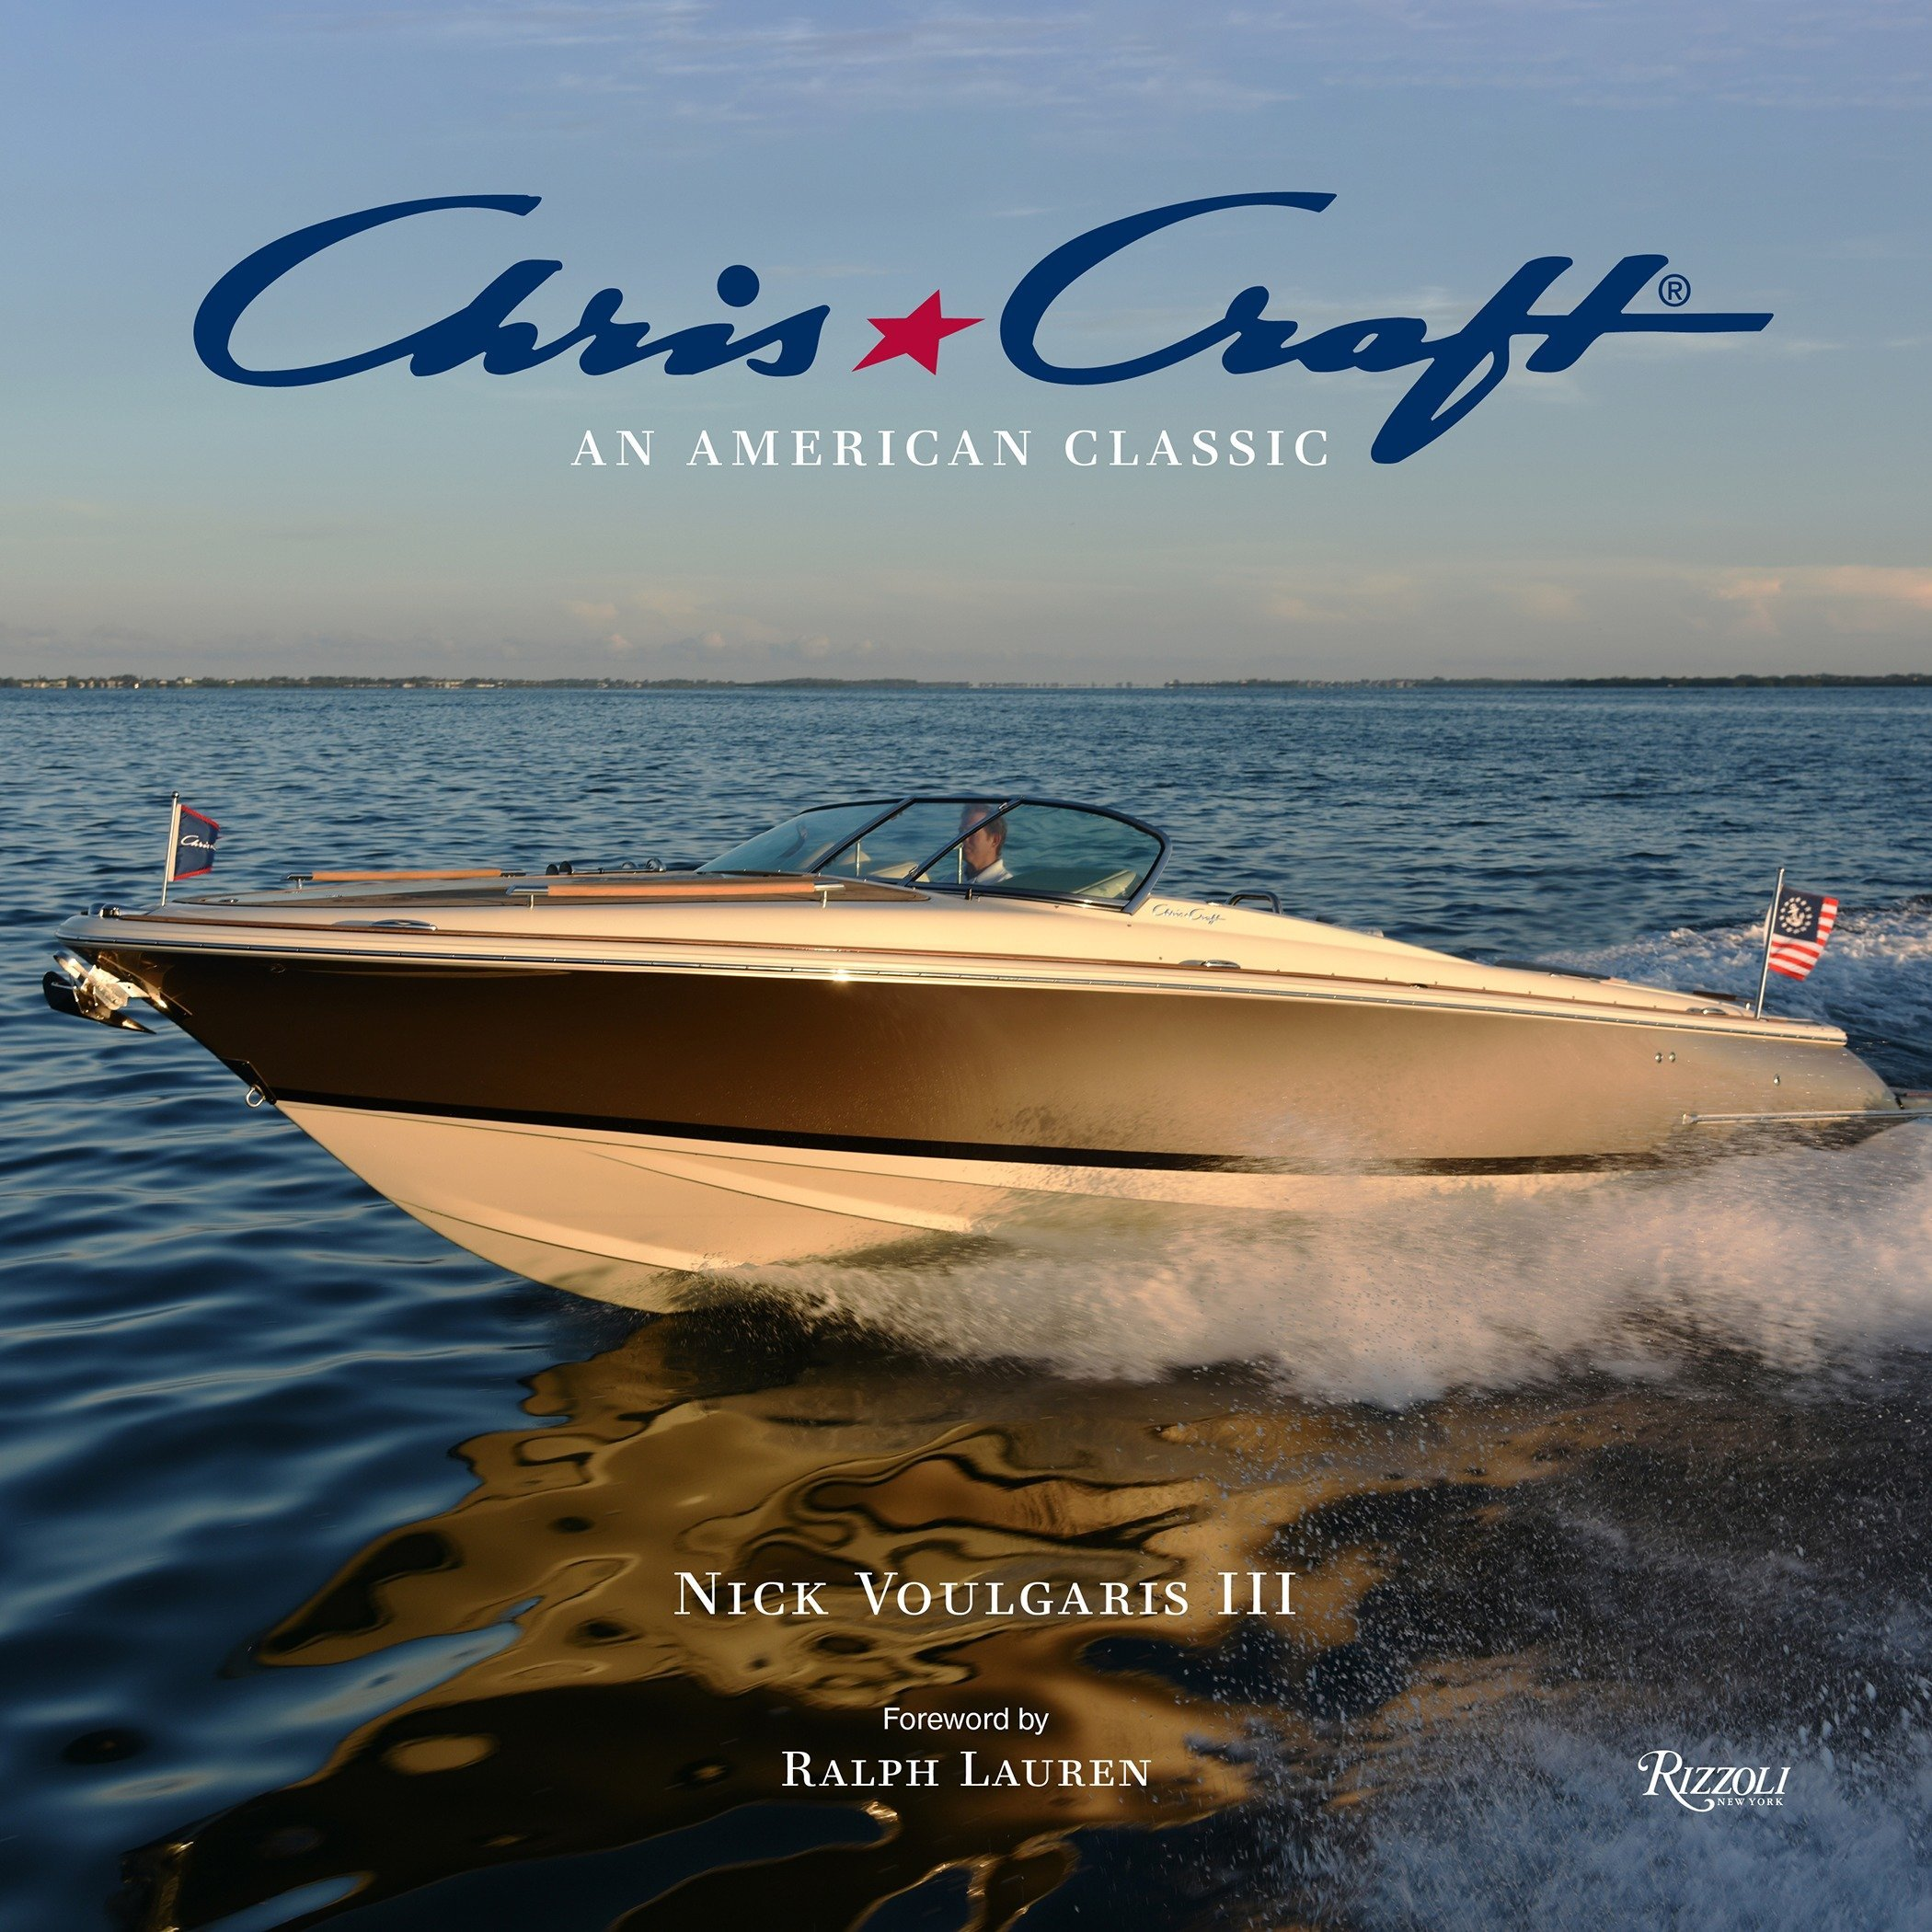 Chris-Craft Boats: An American Classic by Rizzoli